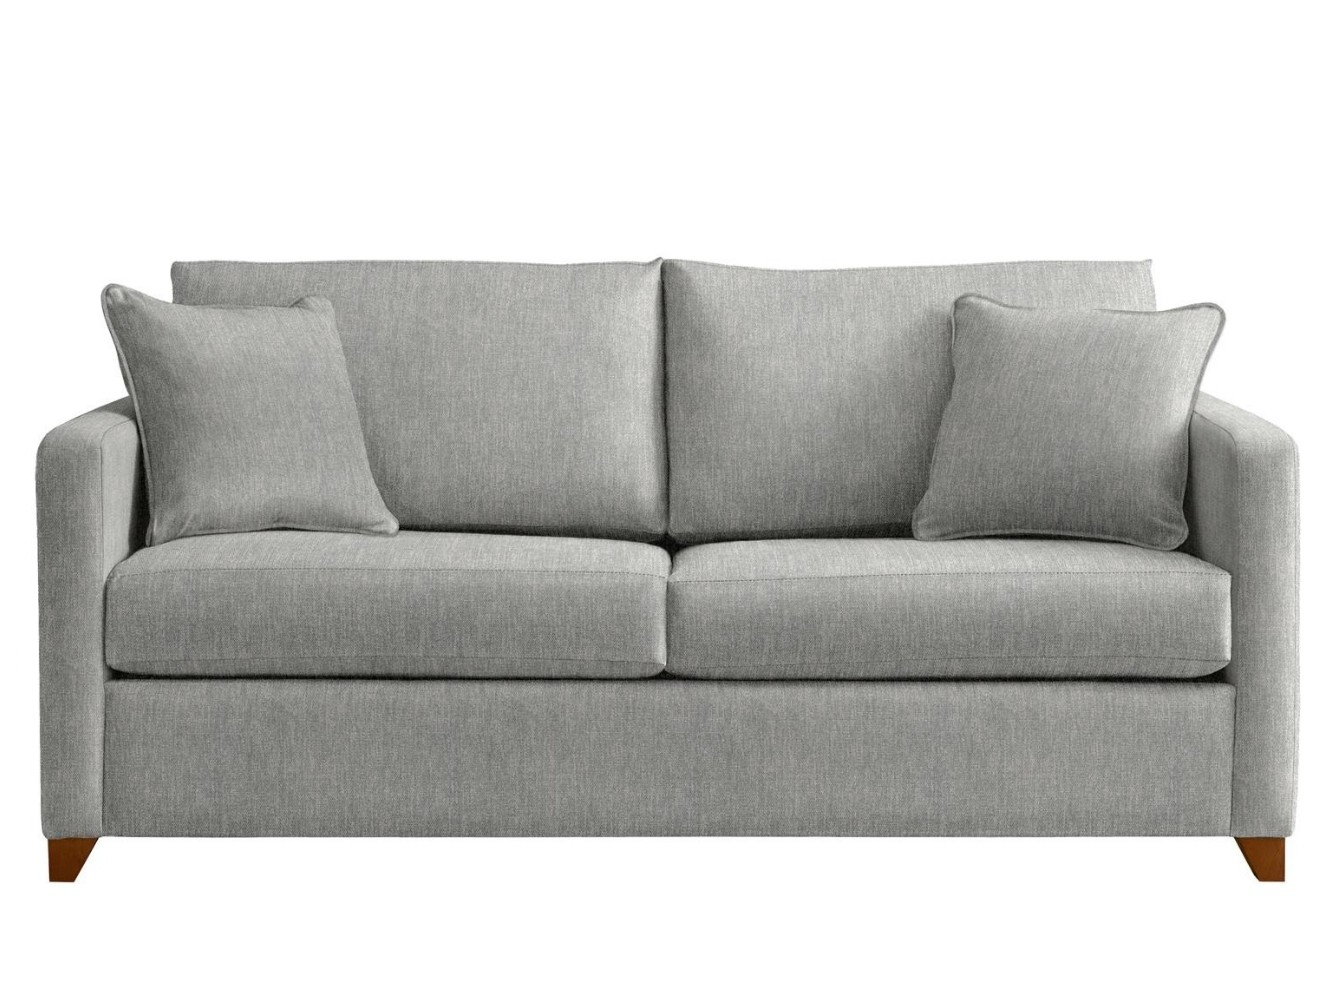 This is how I look in Stain Resistant Broad Weave Linen Silver with reflex foam seat cushions